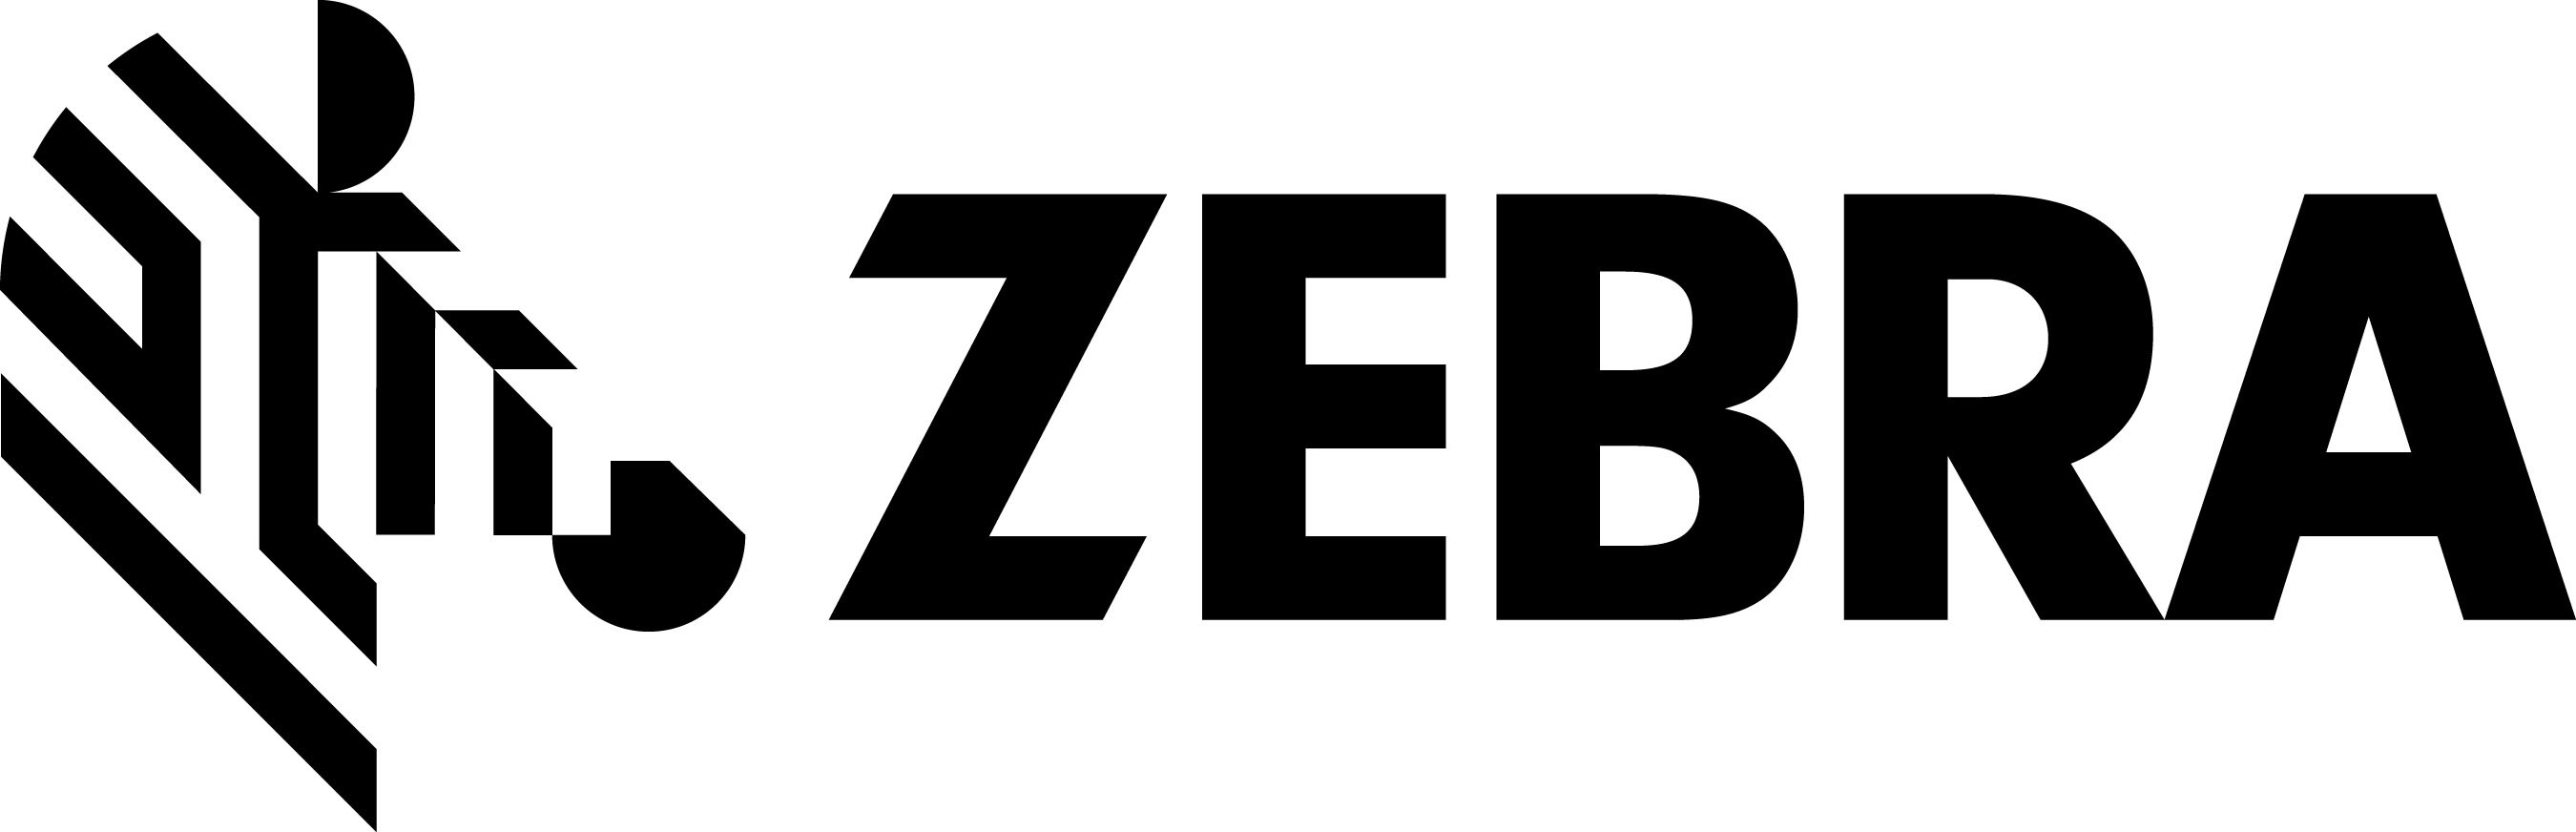 Zebra Technologies Introduces New Customizable, Enterprise-Class Tablets for Enterprise Asset Intelligence